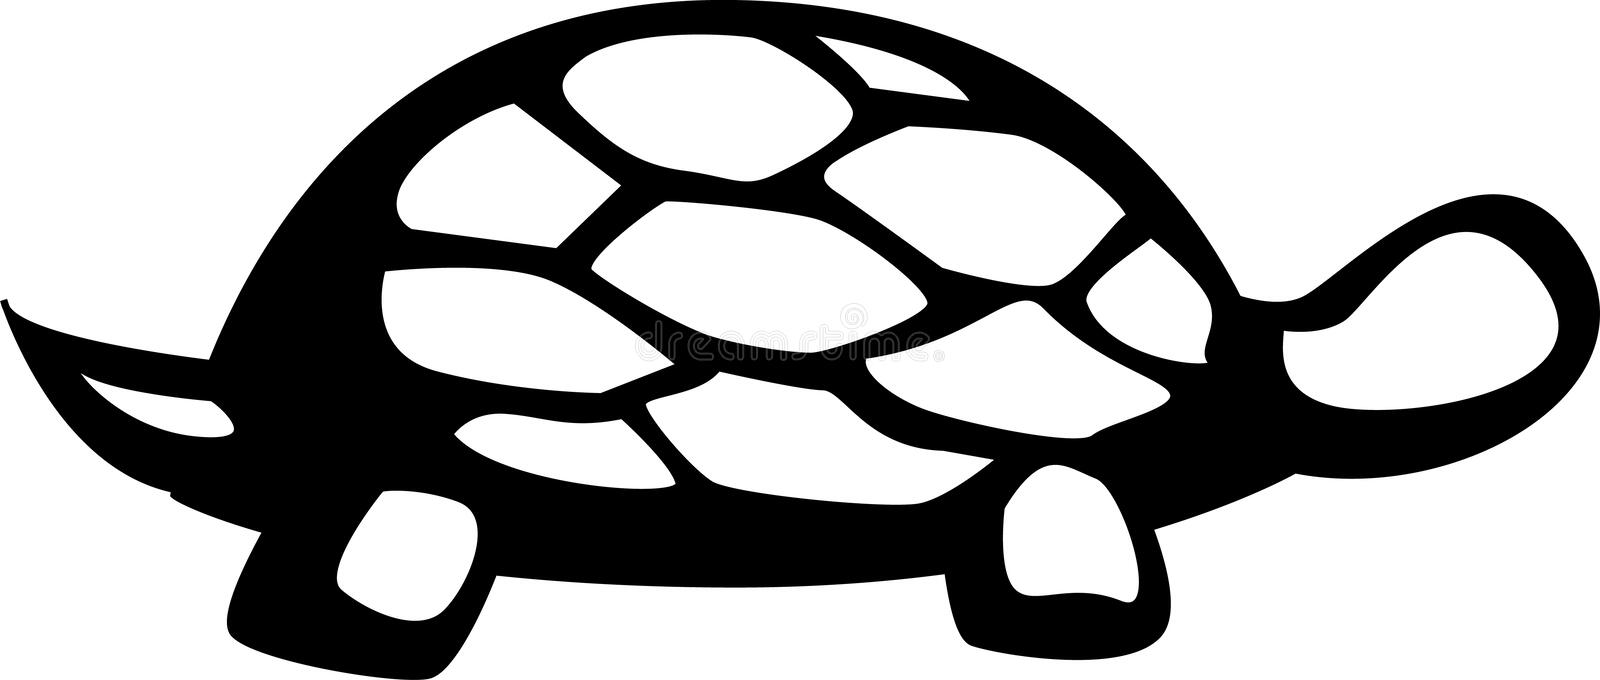 Land or sea turtle vector illustration stock illustration